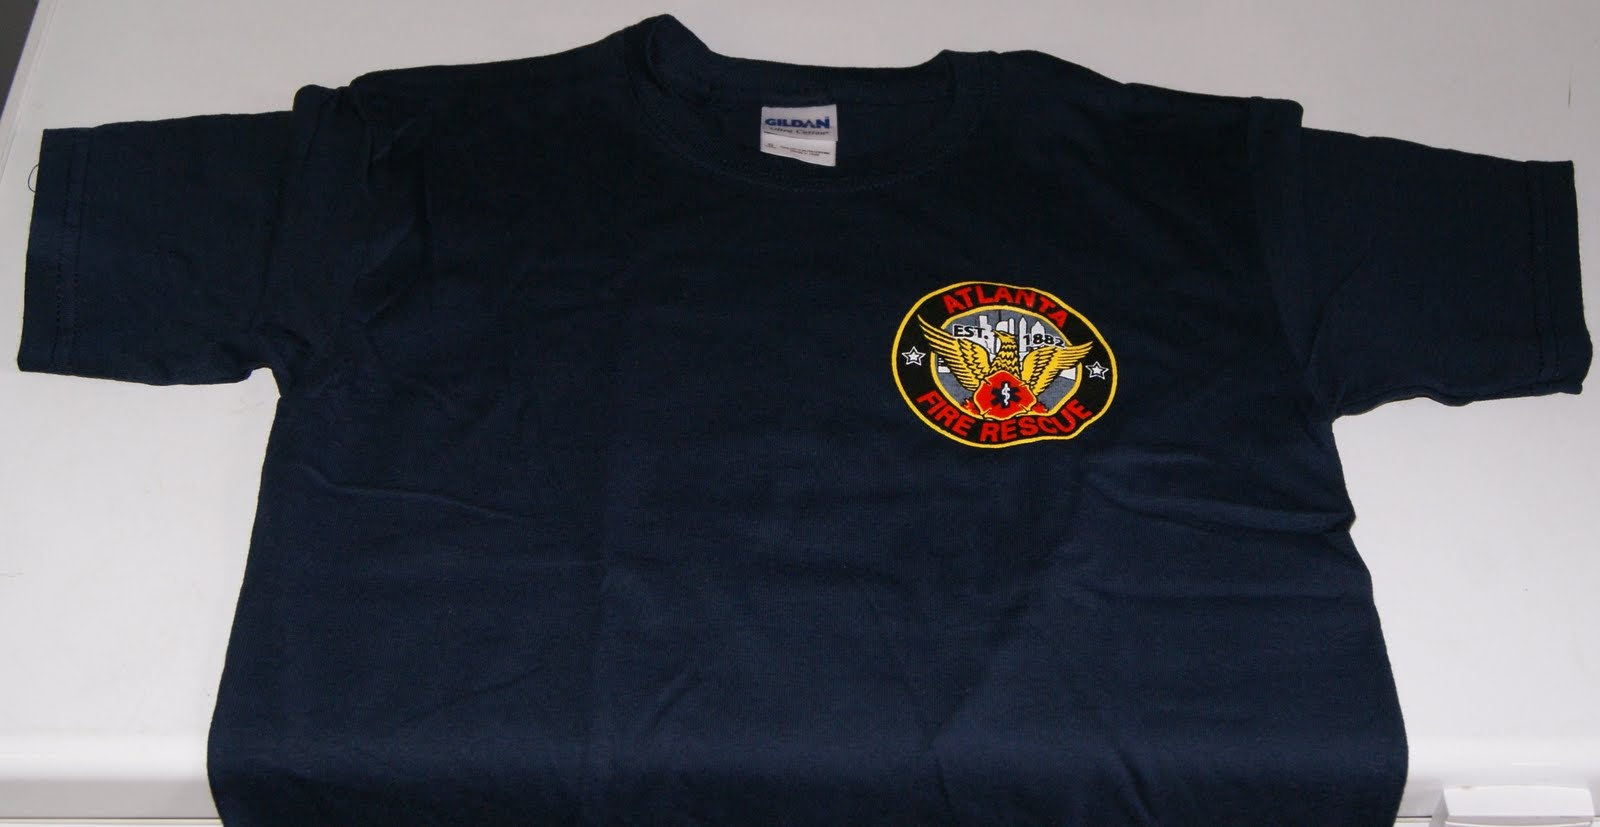 Atlanta Fire Department Design Navy Kids S M L 15 Adults XL XXL XXXL 20